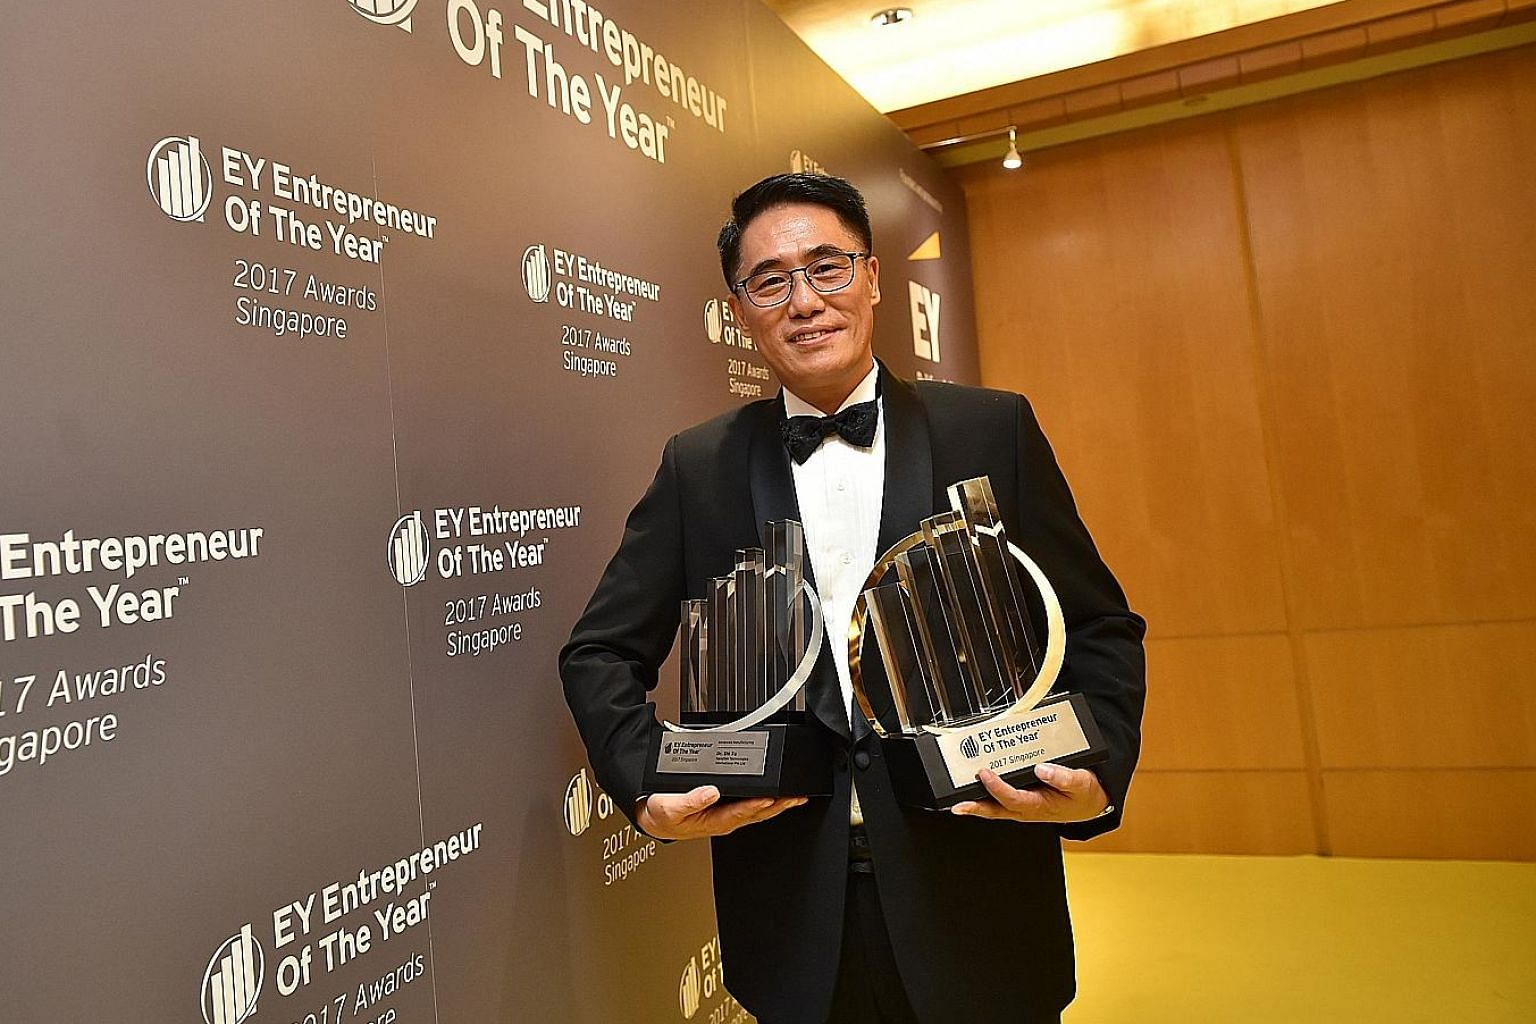 Nanofilm Technologies' Dr Shi Xu won the award based on six criteria: entrepreneurial spirit, innovation, personal integrity and influence, financial performance, strategic direction and global impact. He also won the Entrepreneur of the Year for Adv